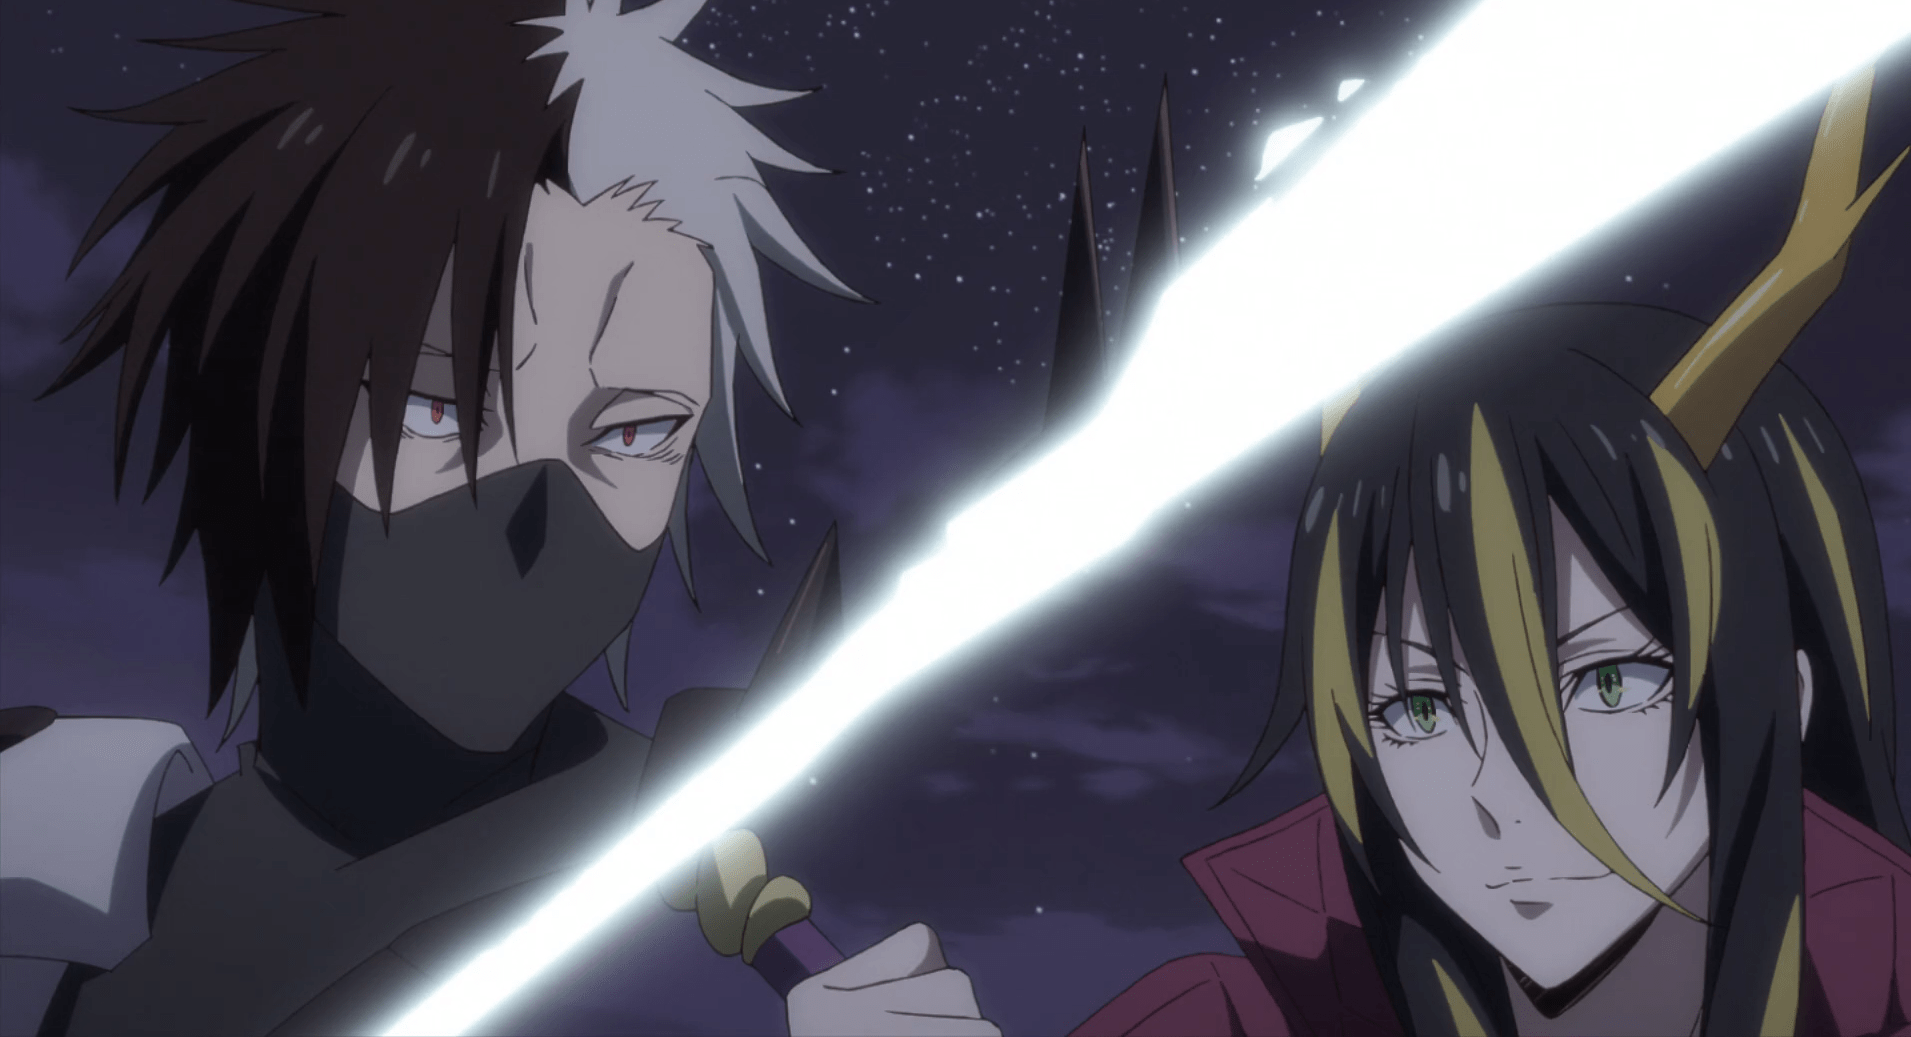 17/05/2021· that time i got reincarnated as a slime season 2 part 2 will have rimuru confronting the 10 great demon lords. That Time I Got Reincarnated As A Slime Season 2 Part 2 Episode 8 Release Date Watch Online